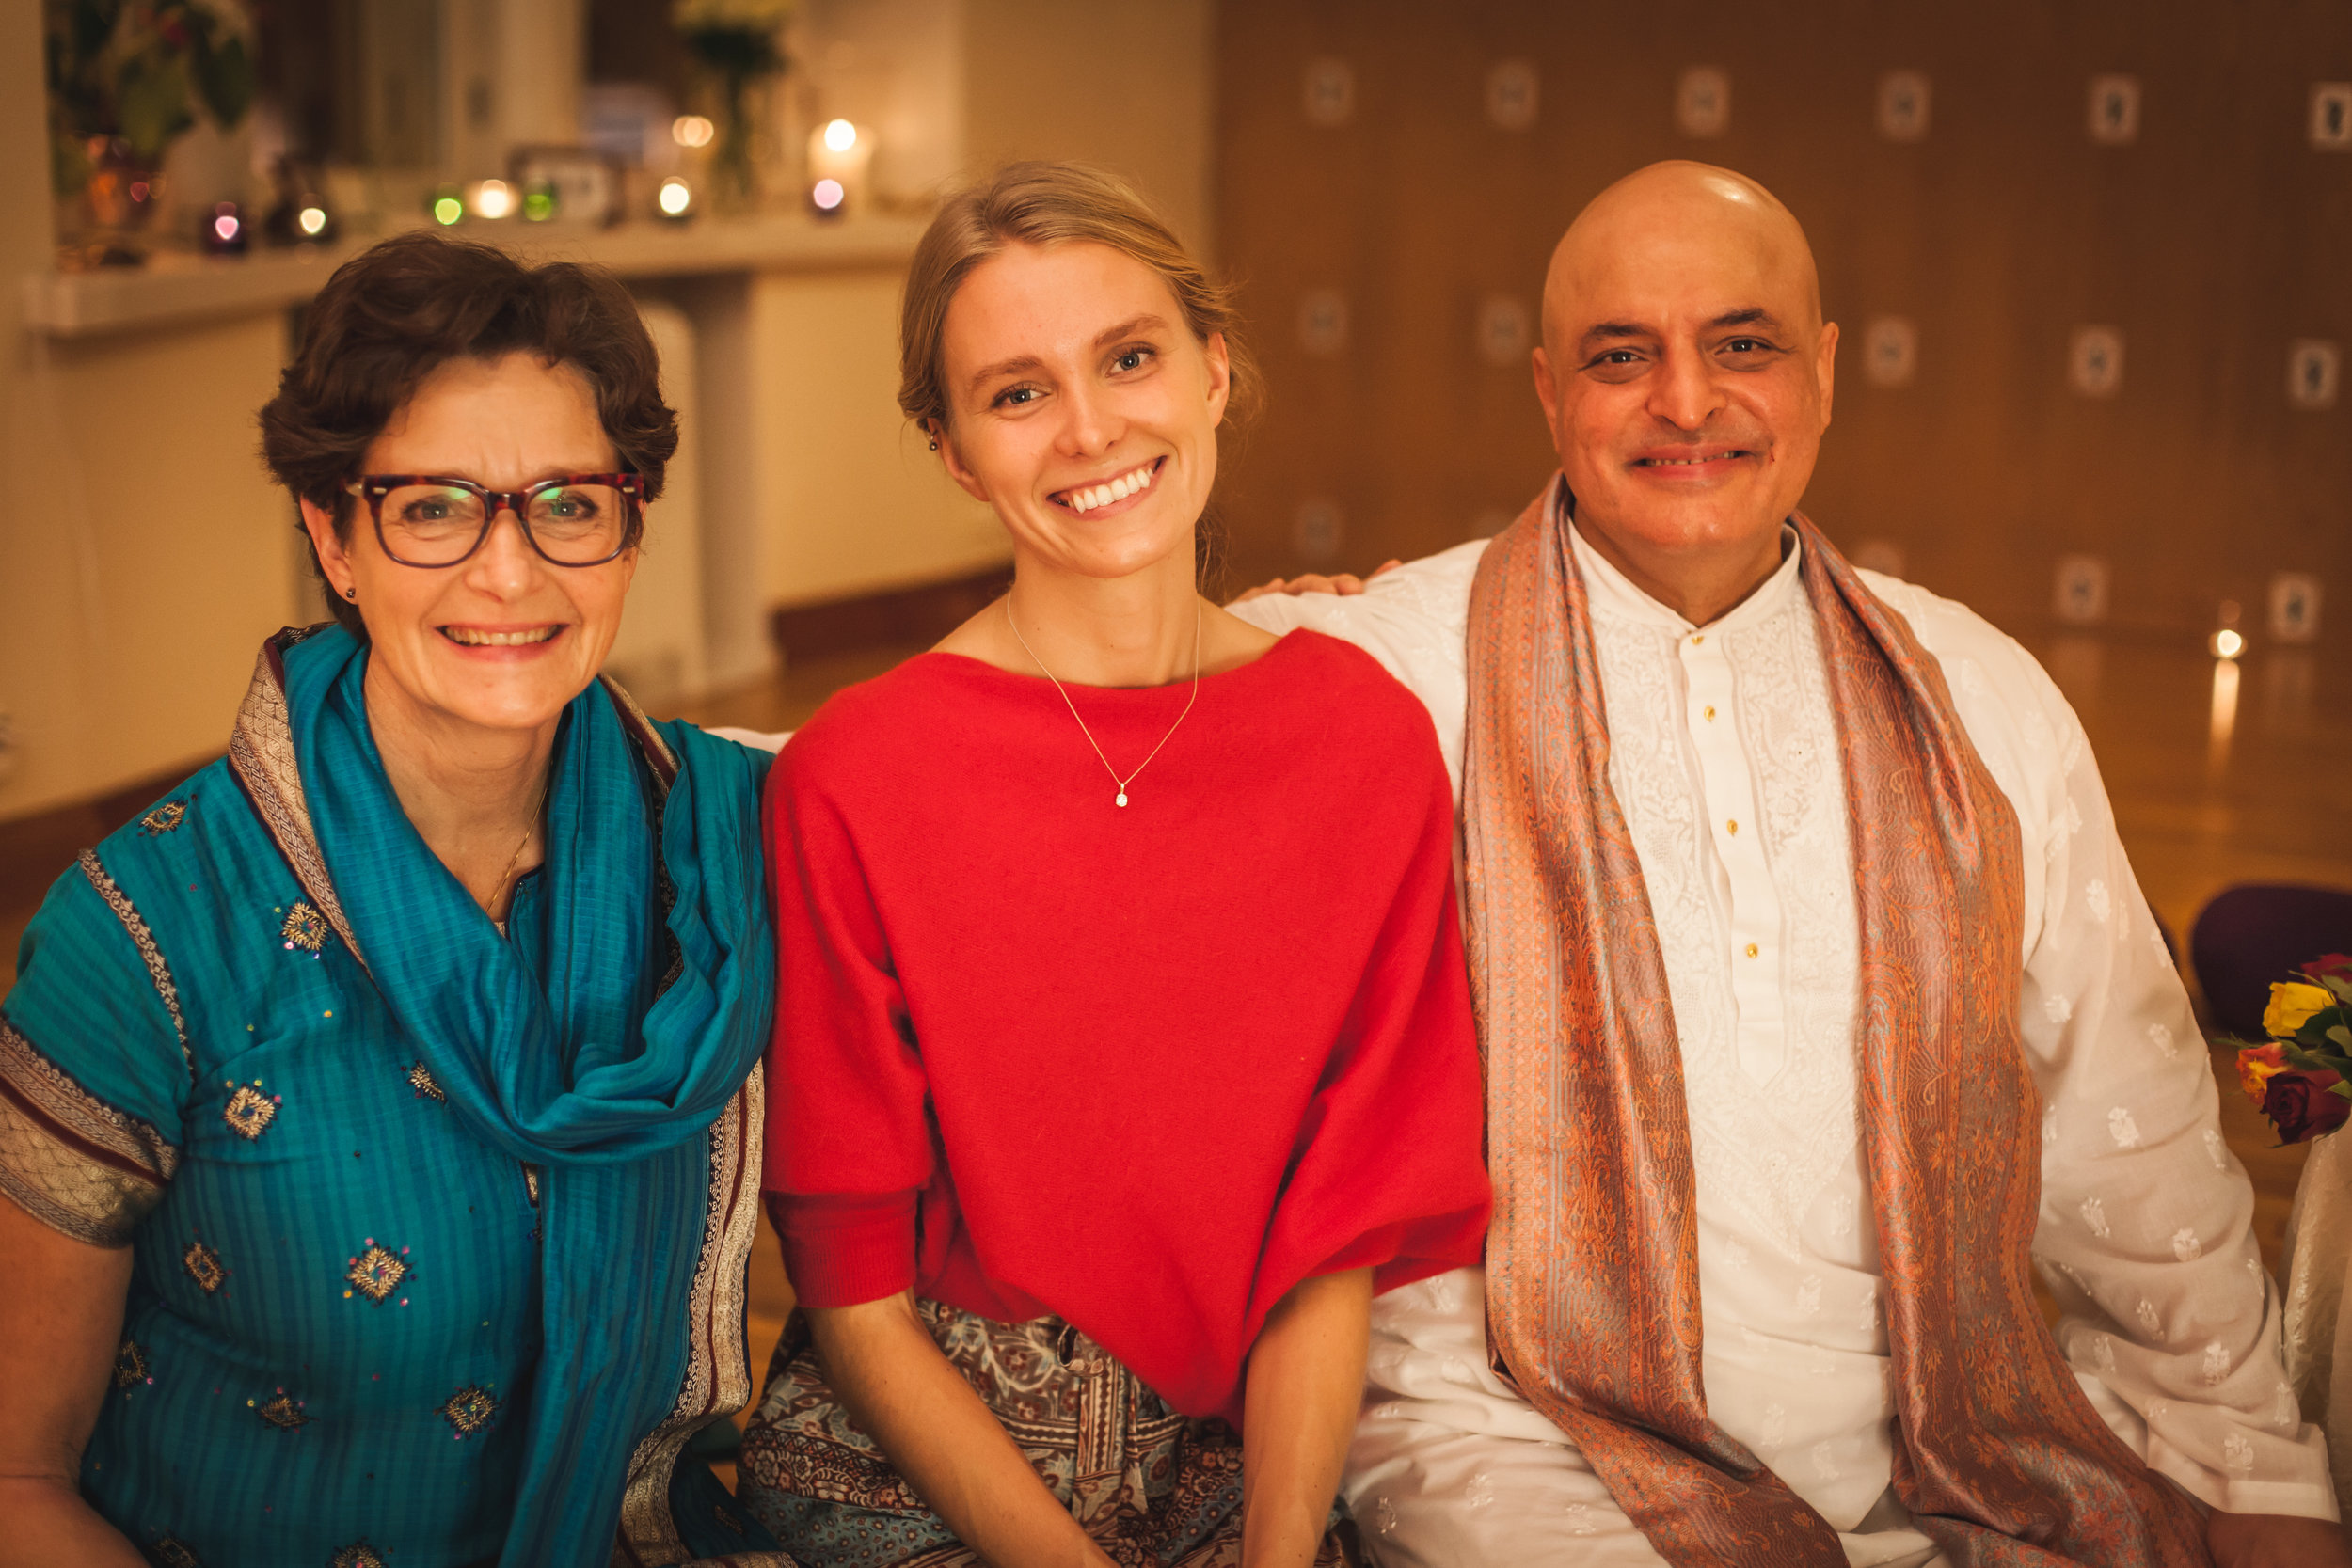 Sharing the wisdom of Purna Yoga. - With my dear teachers Tove Palmgren and Aadil Palkhivala.